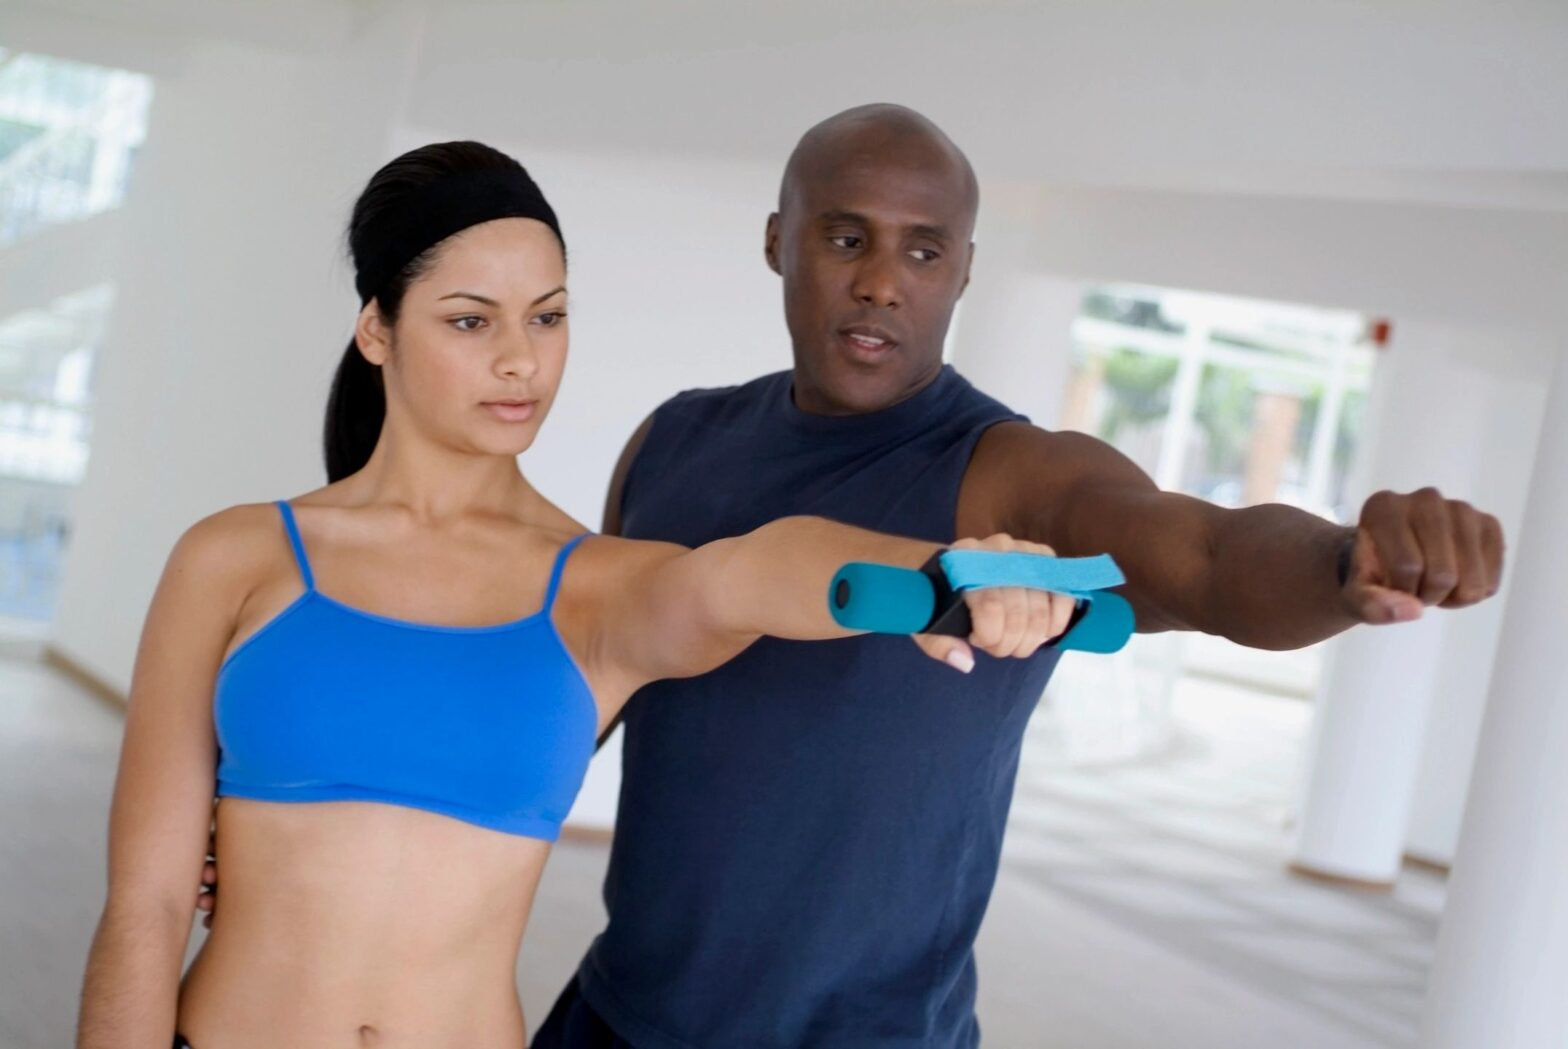 accountability partner training woman with dumbbell